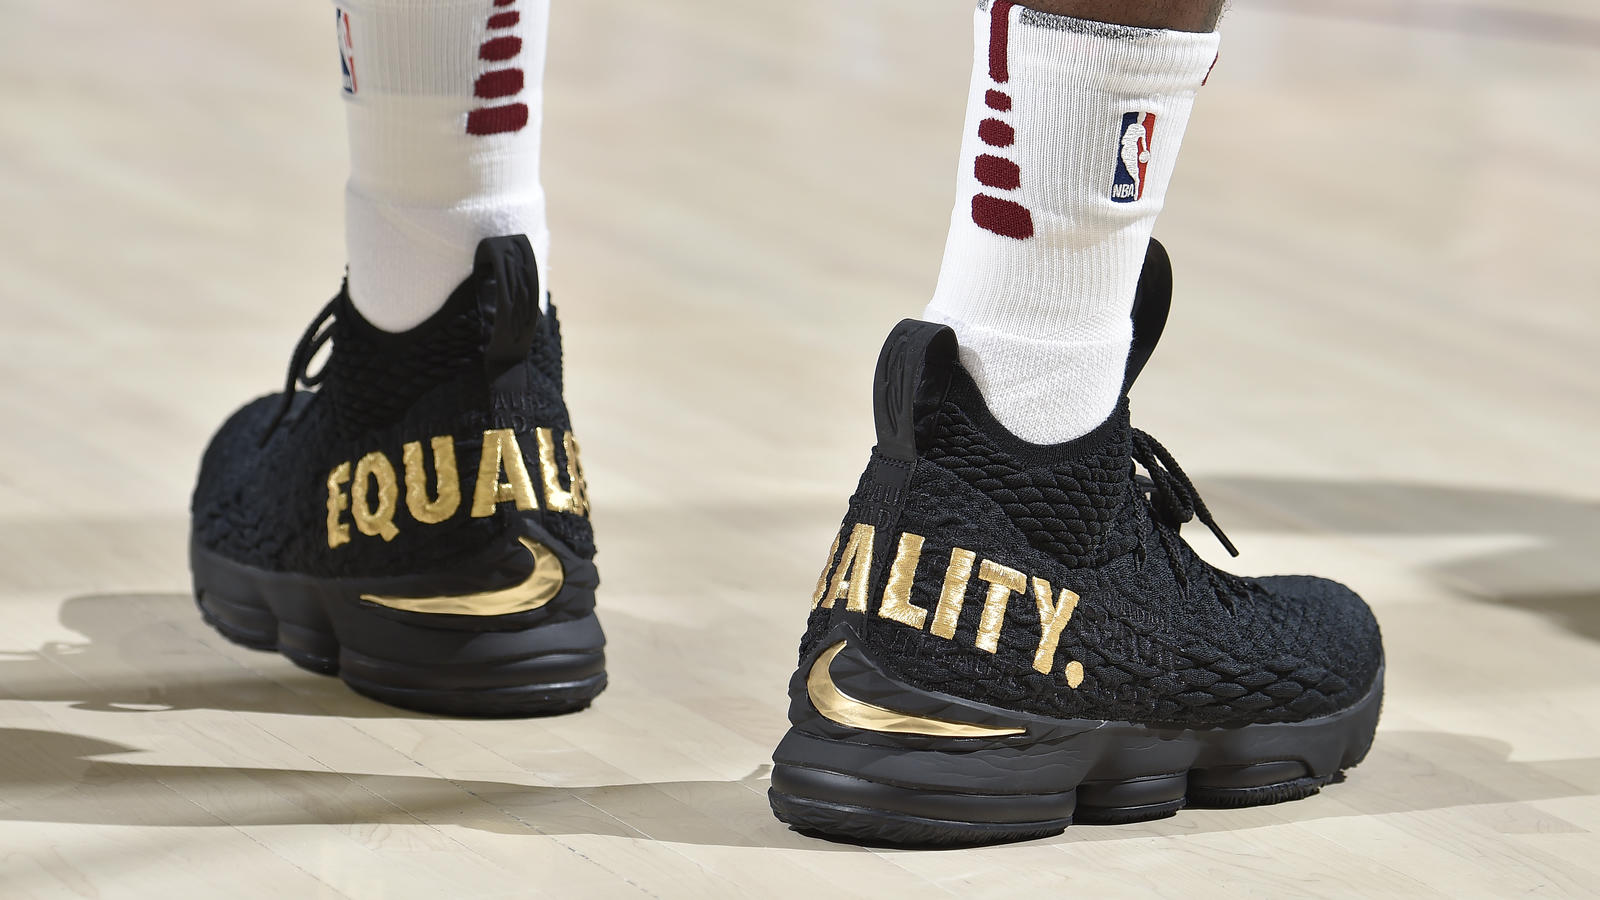 9b7207059fc5 How to Get the LeBron XV EQUALITY 0. The Nike LeBron 15